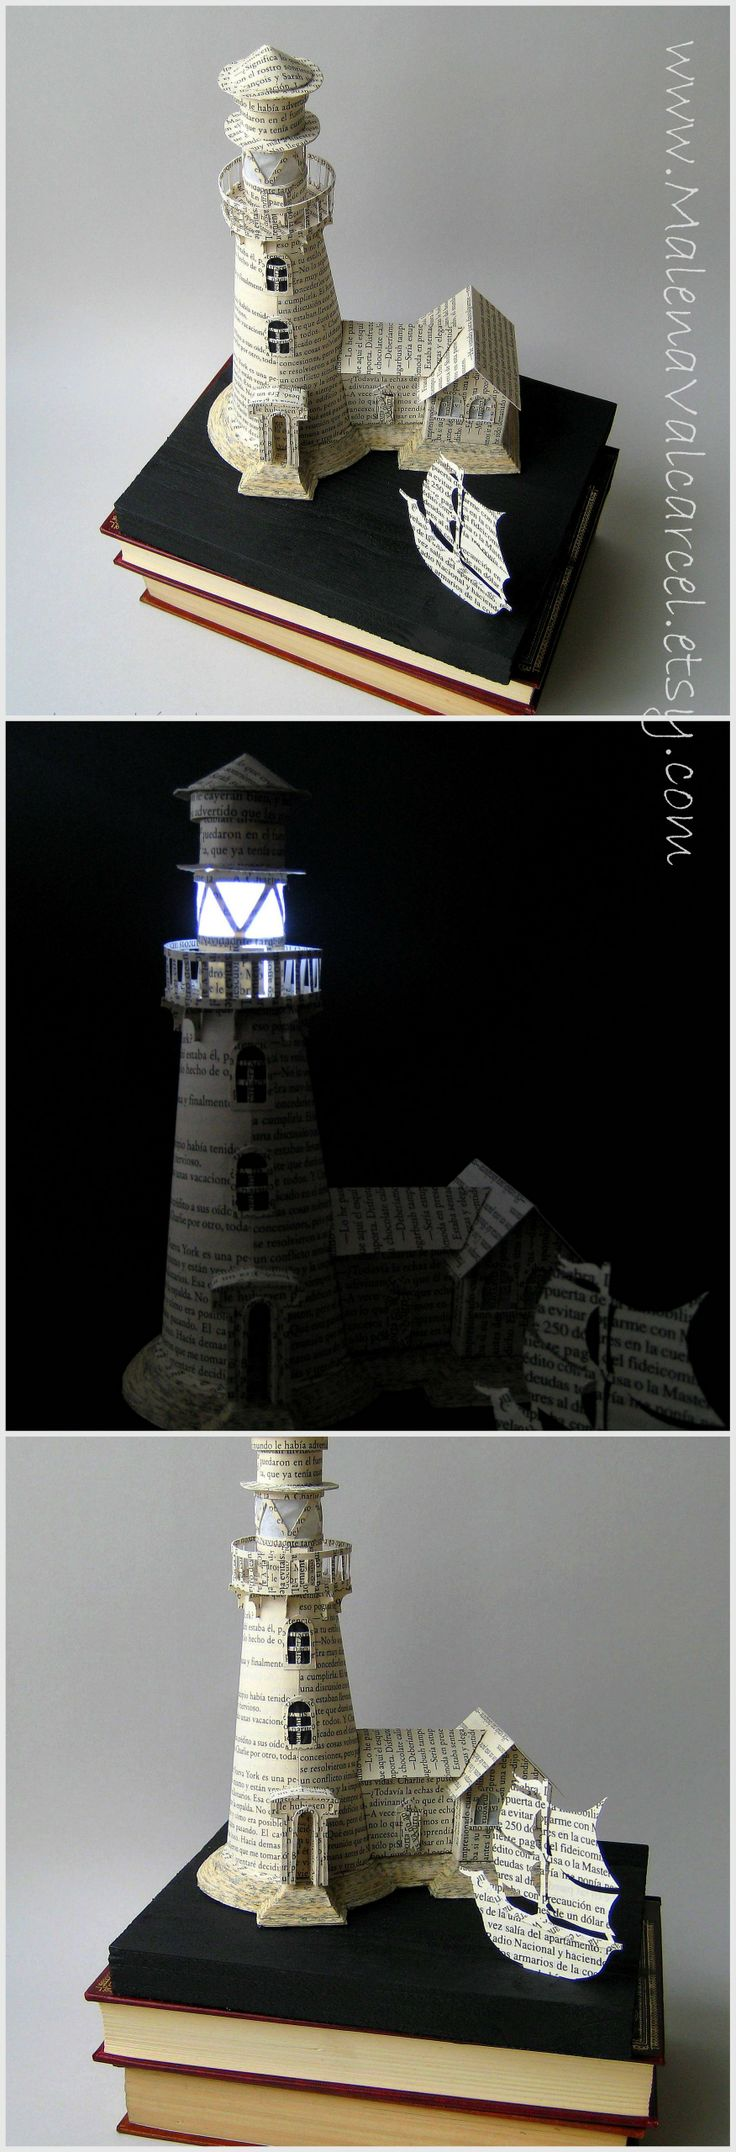 Paper Book Art by Malena Valcárcel. Light house